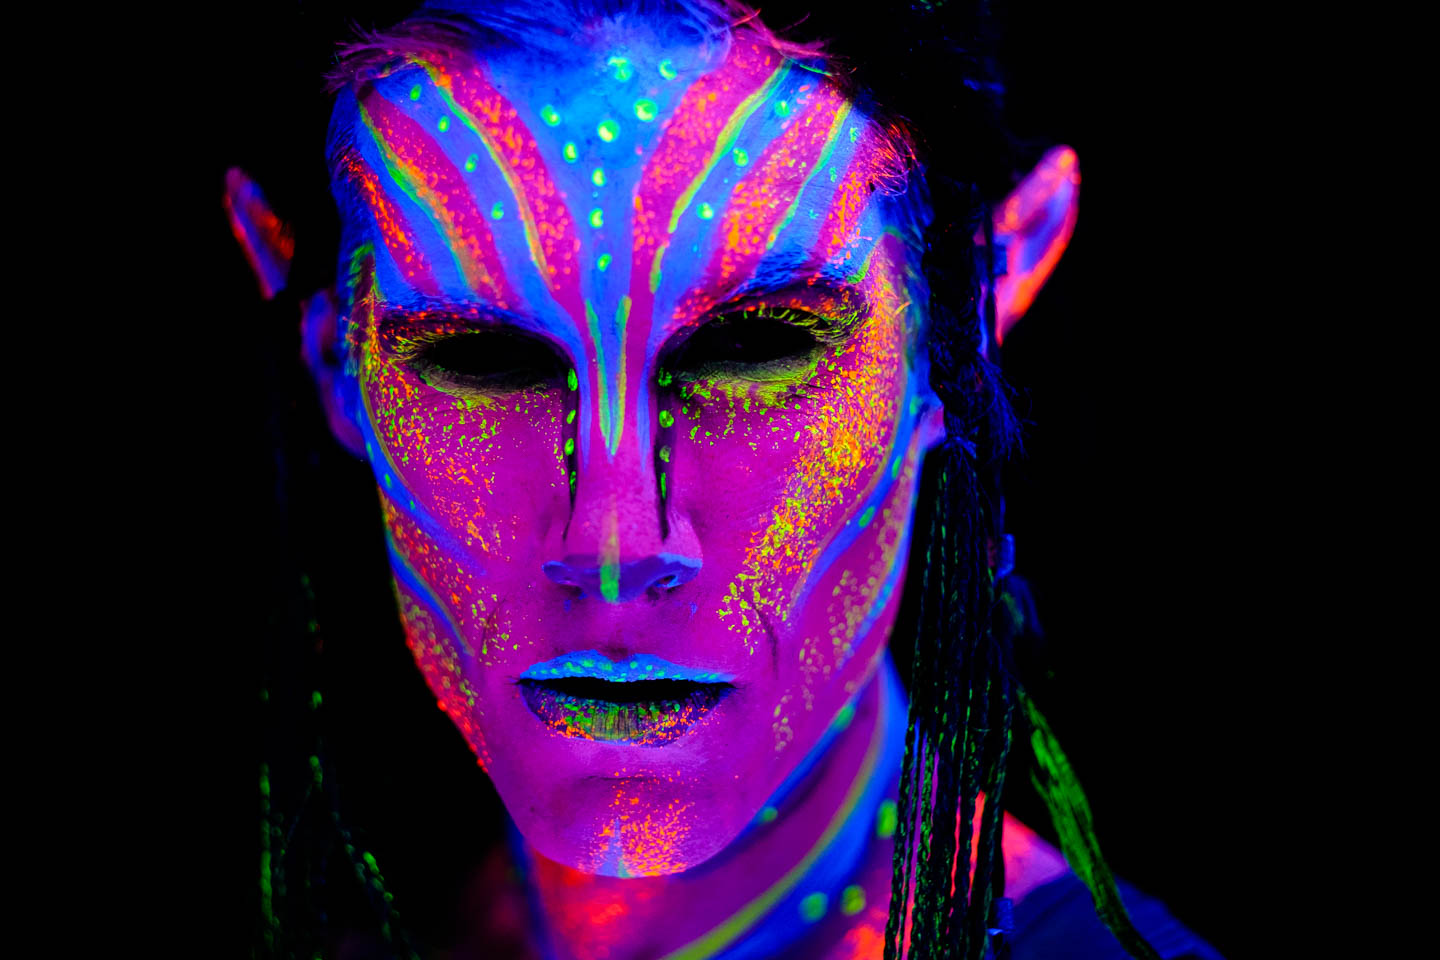 Models and Blacklight Photography, Oh My! | dav.d photography